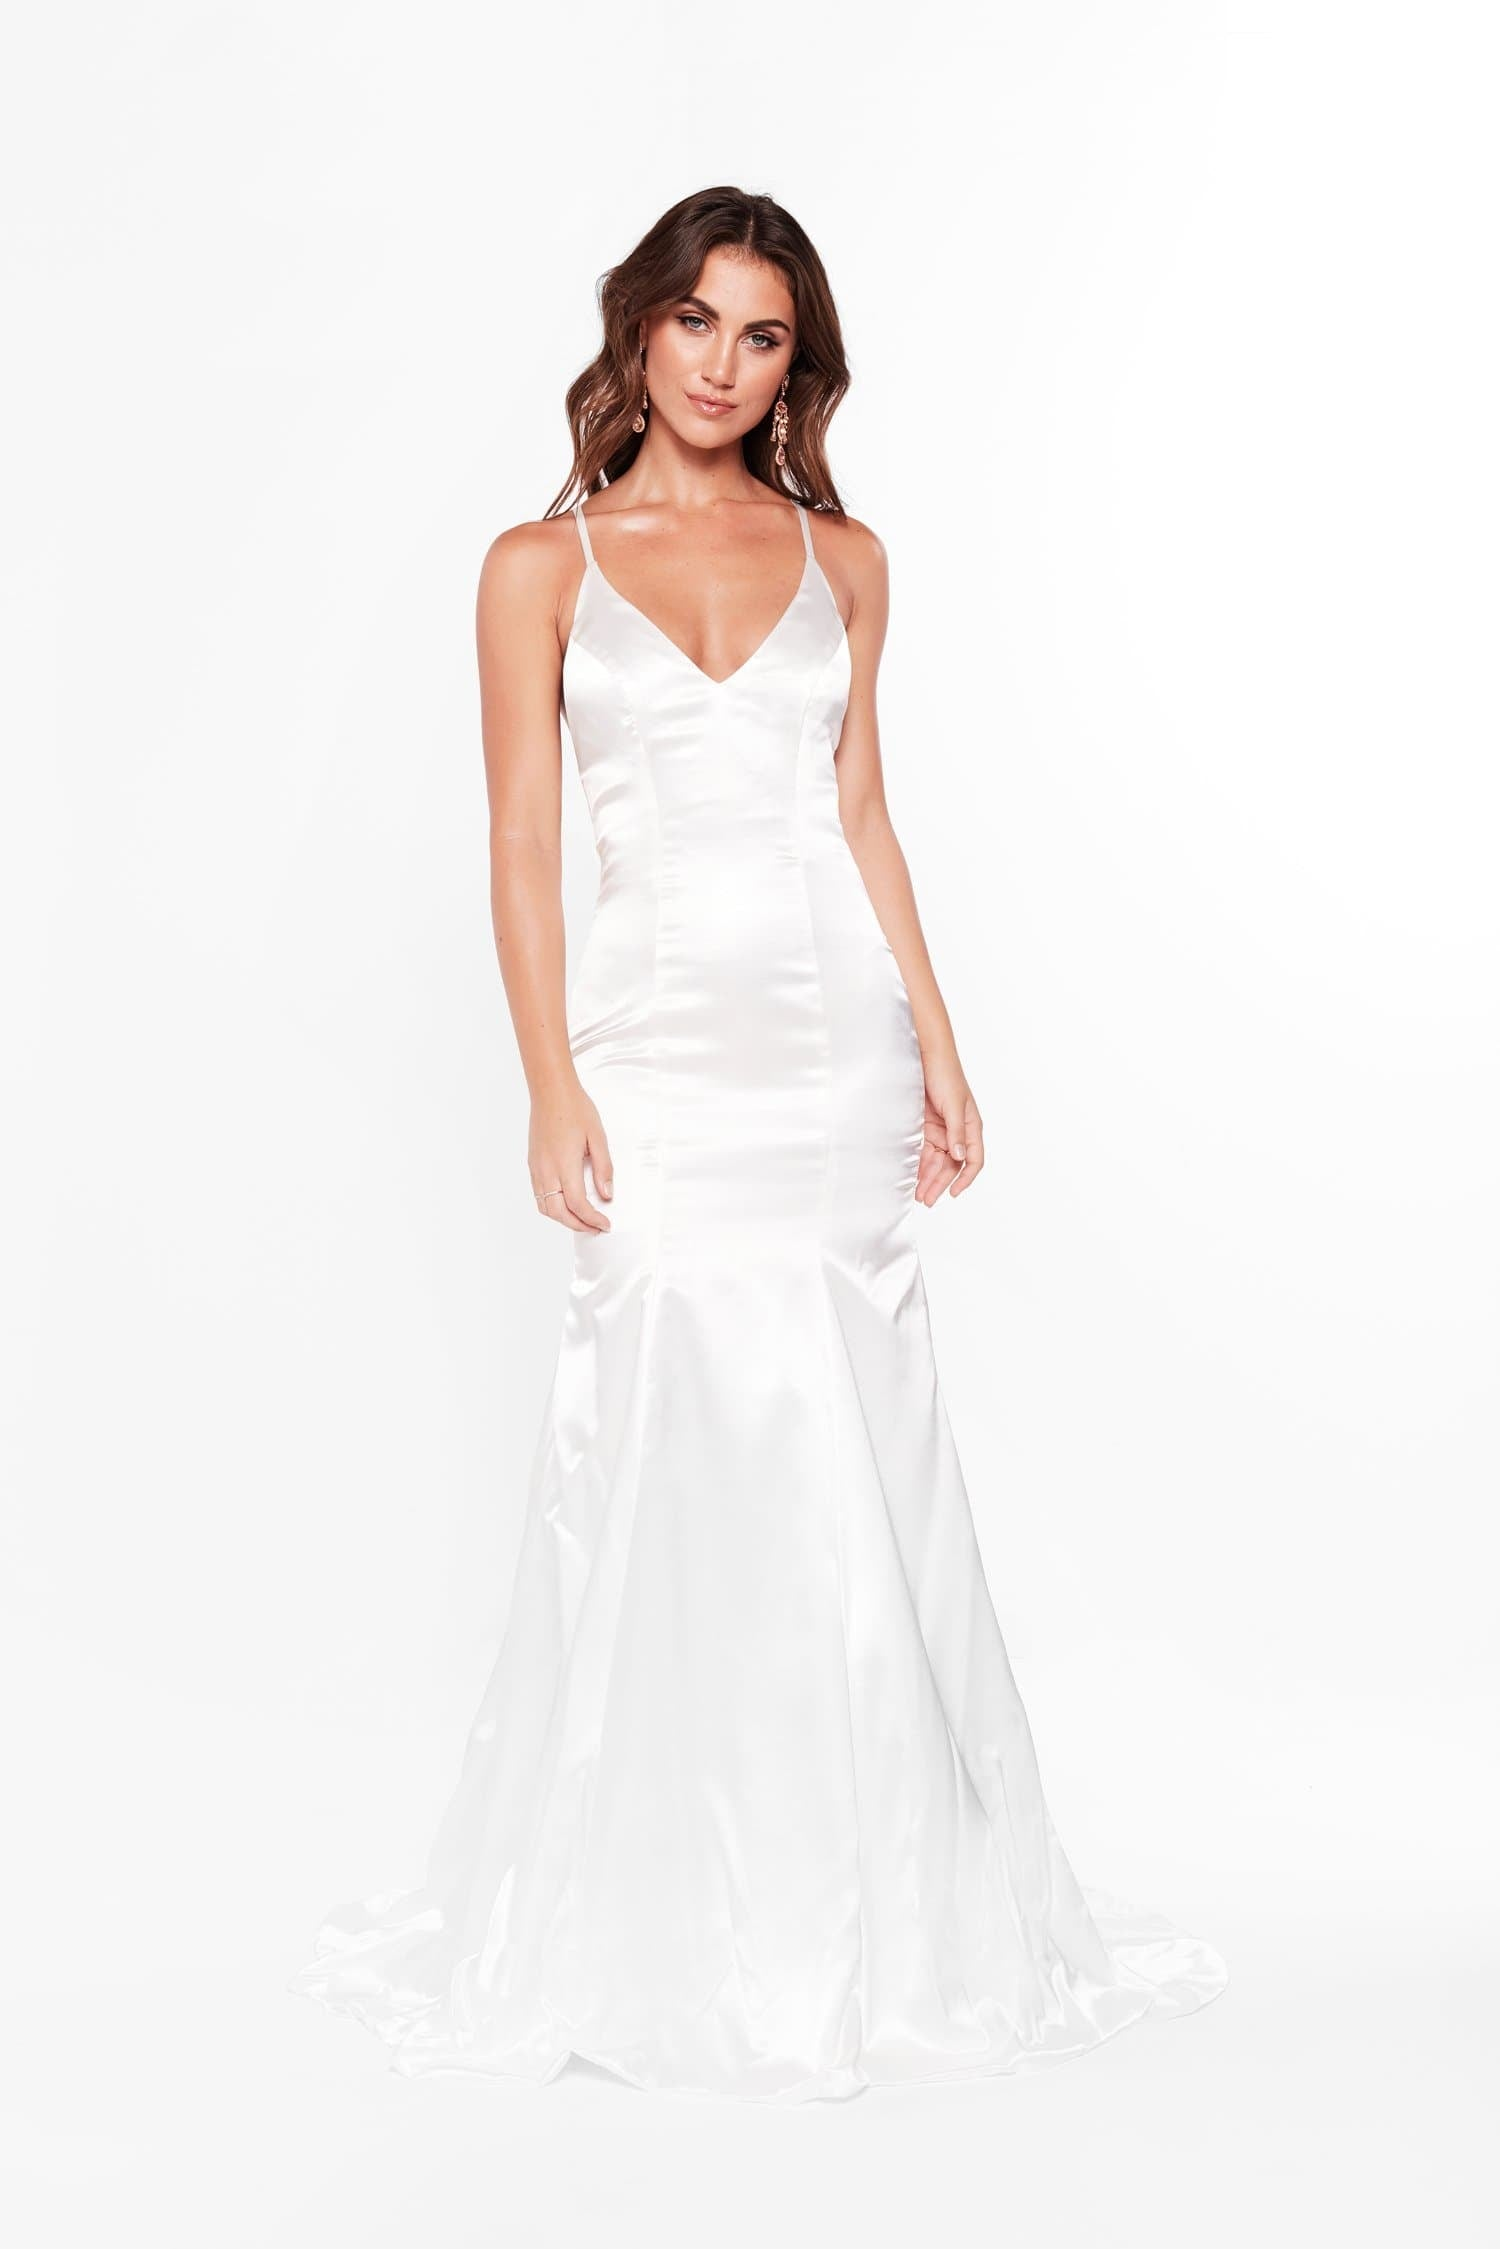 A&N Cadence - White Satin Gown with Criss Cross Back and Mermaid Train